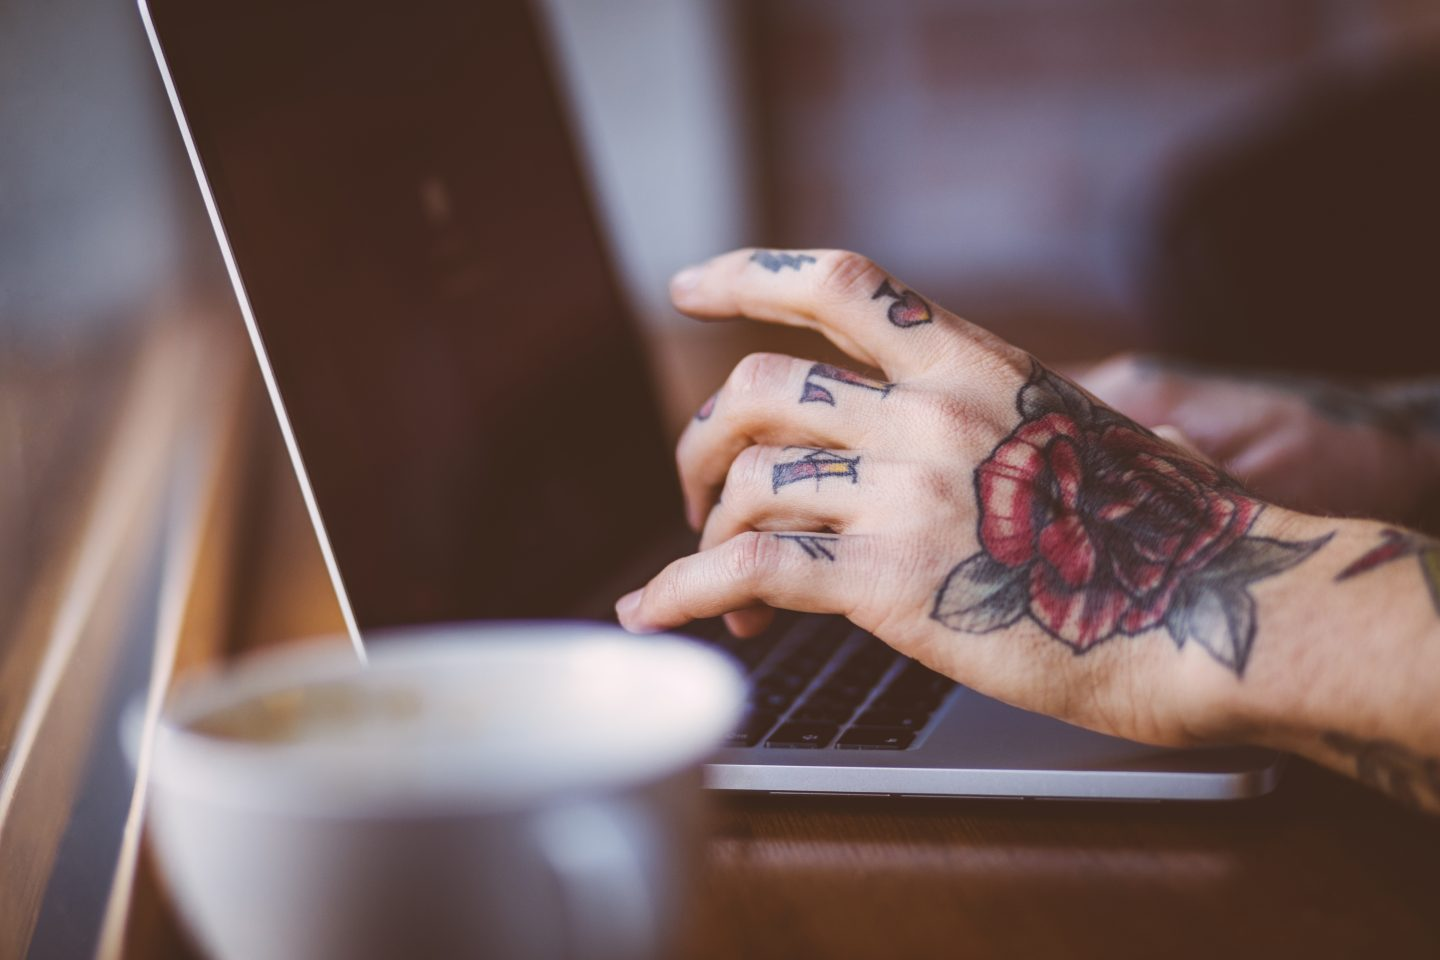 Close up of man's hands with tattoos typing on keyboard